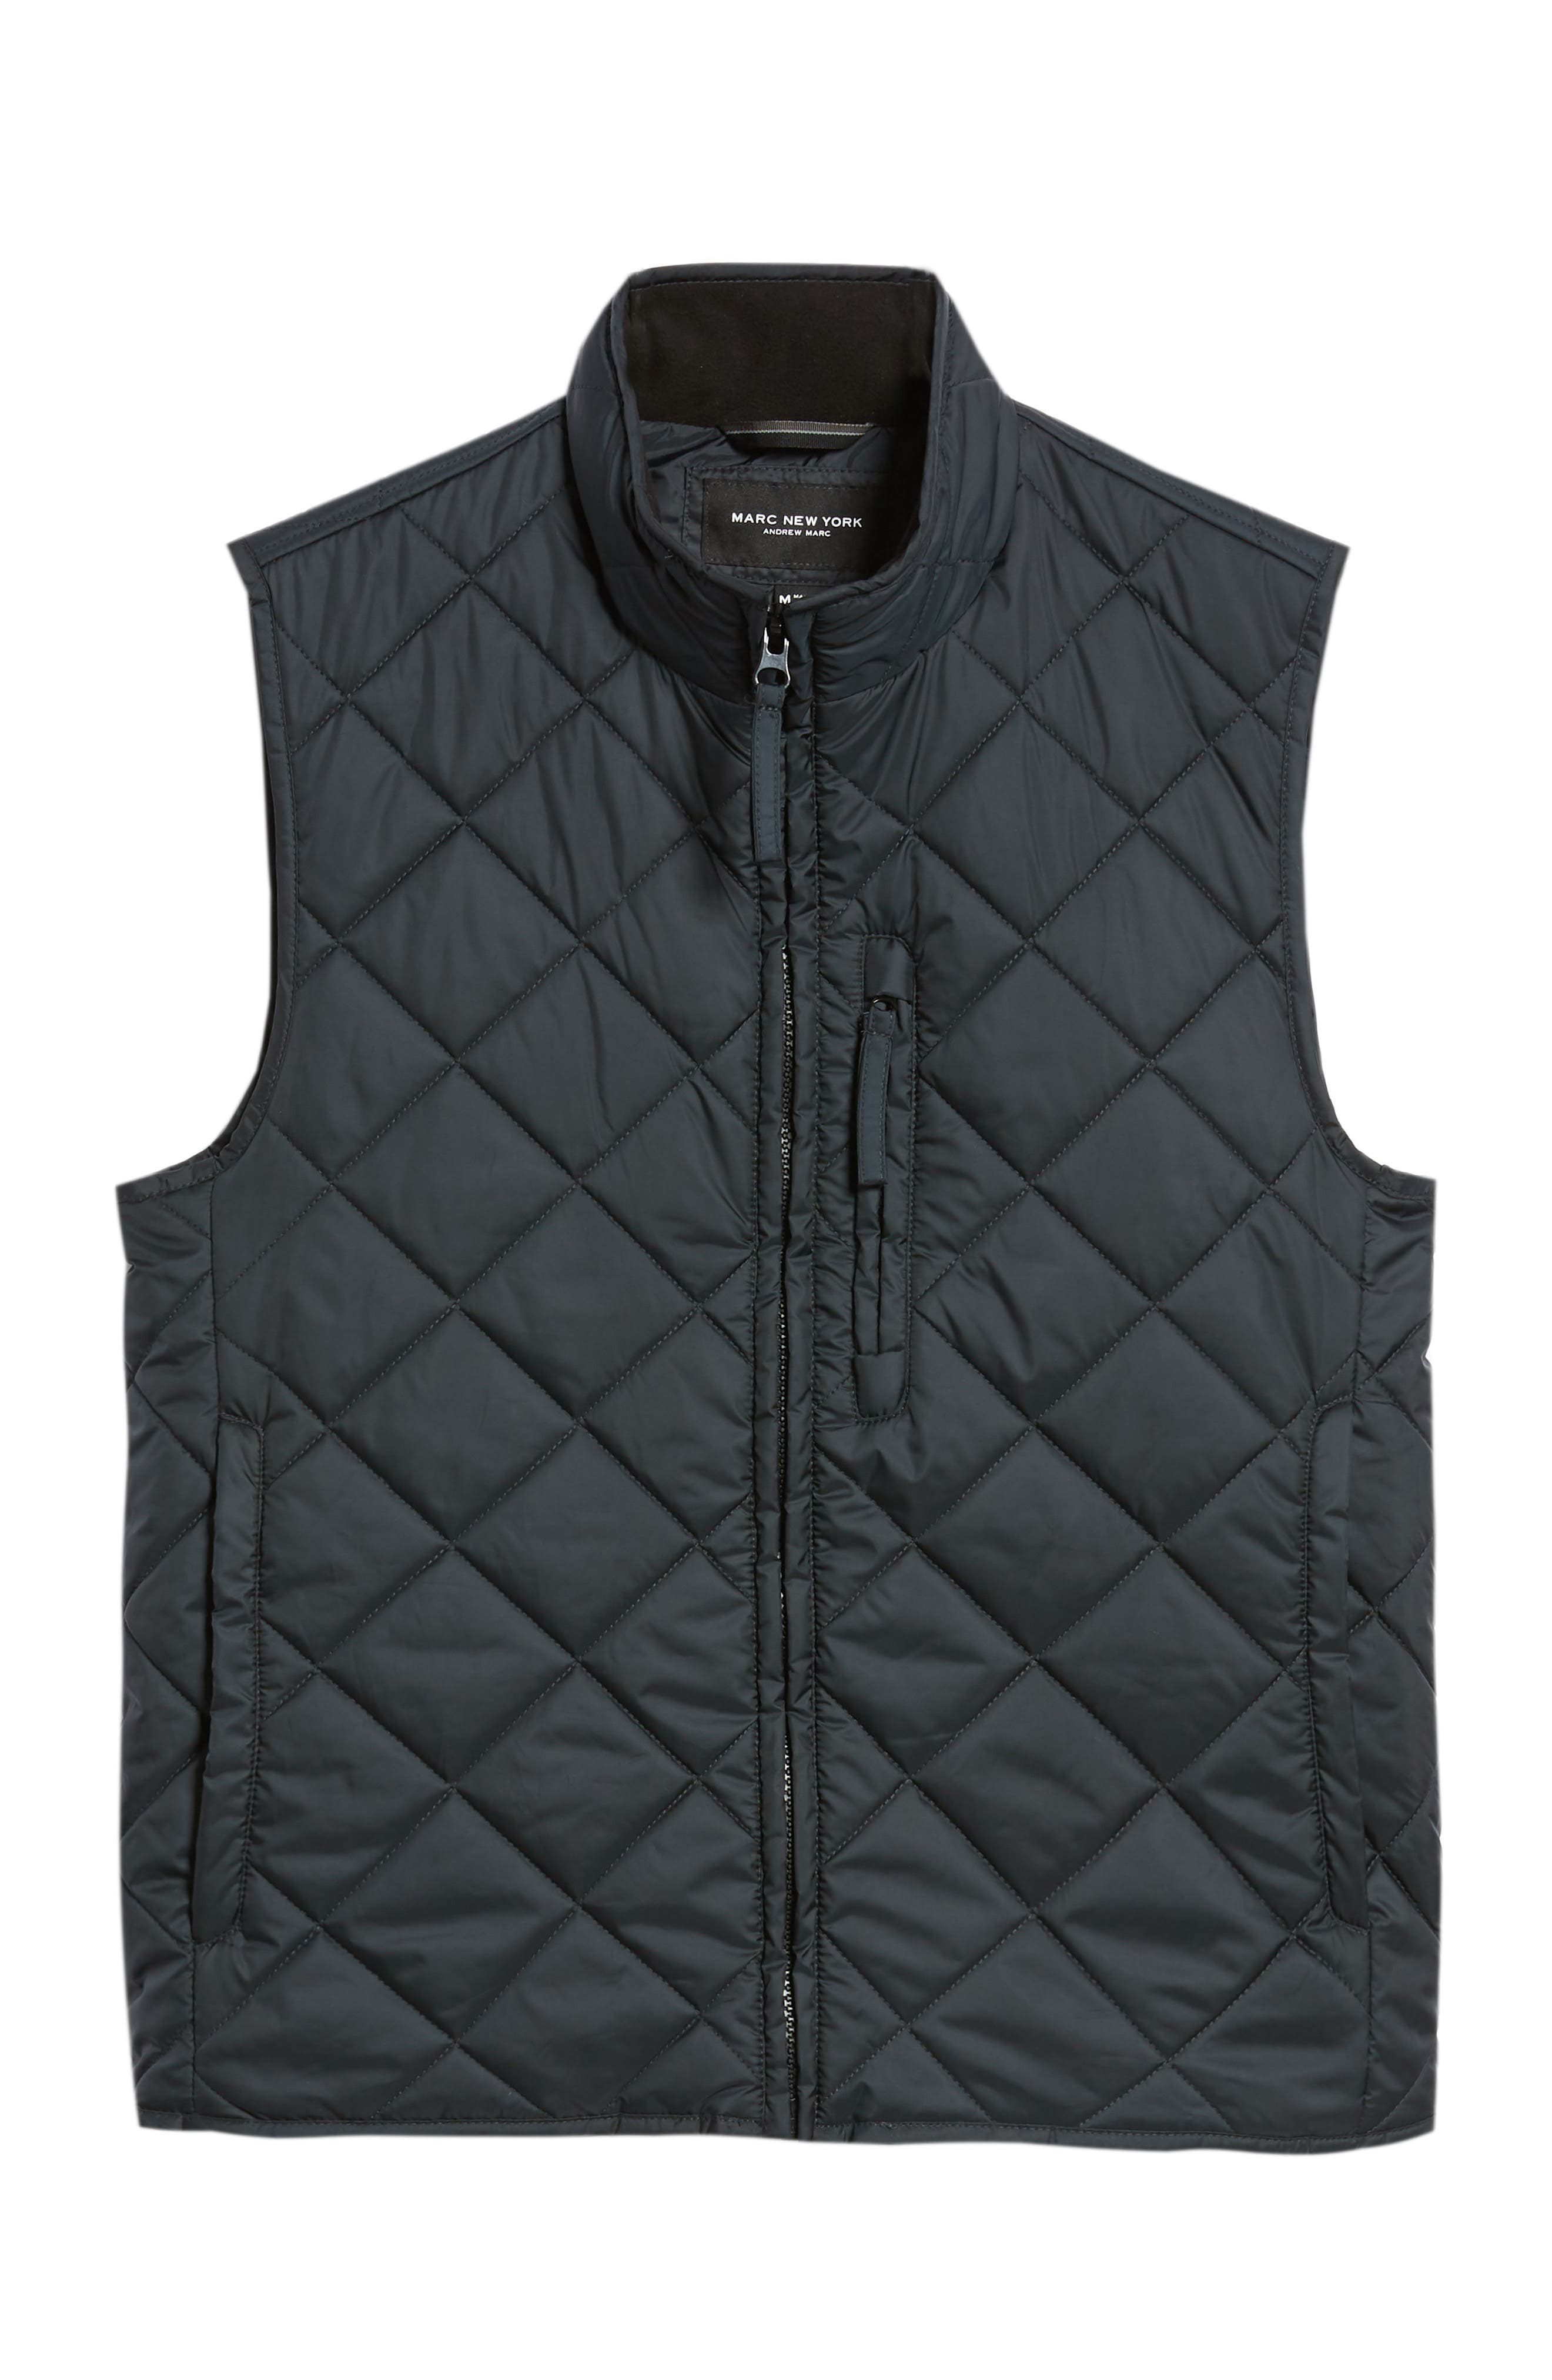 MARC NEW YORK, Chester Packable Quilted Vest, Alternate thumbnail 6, color, BLACK